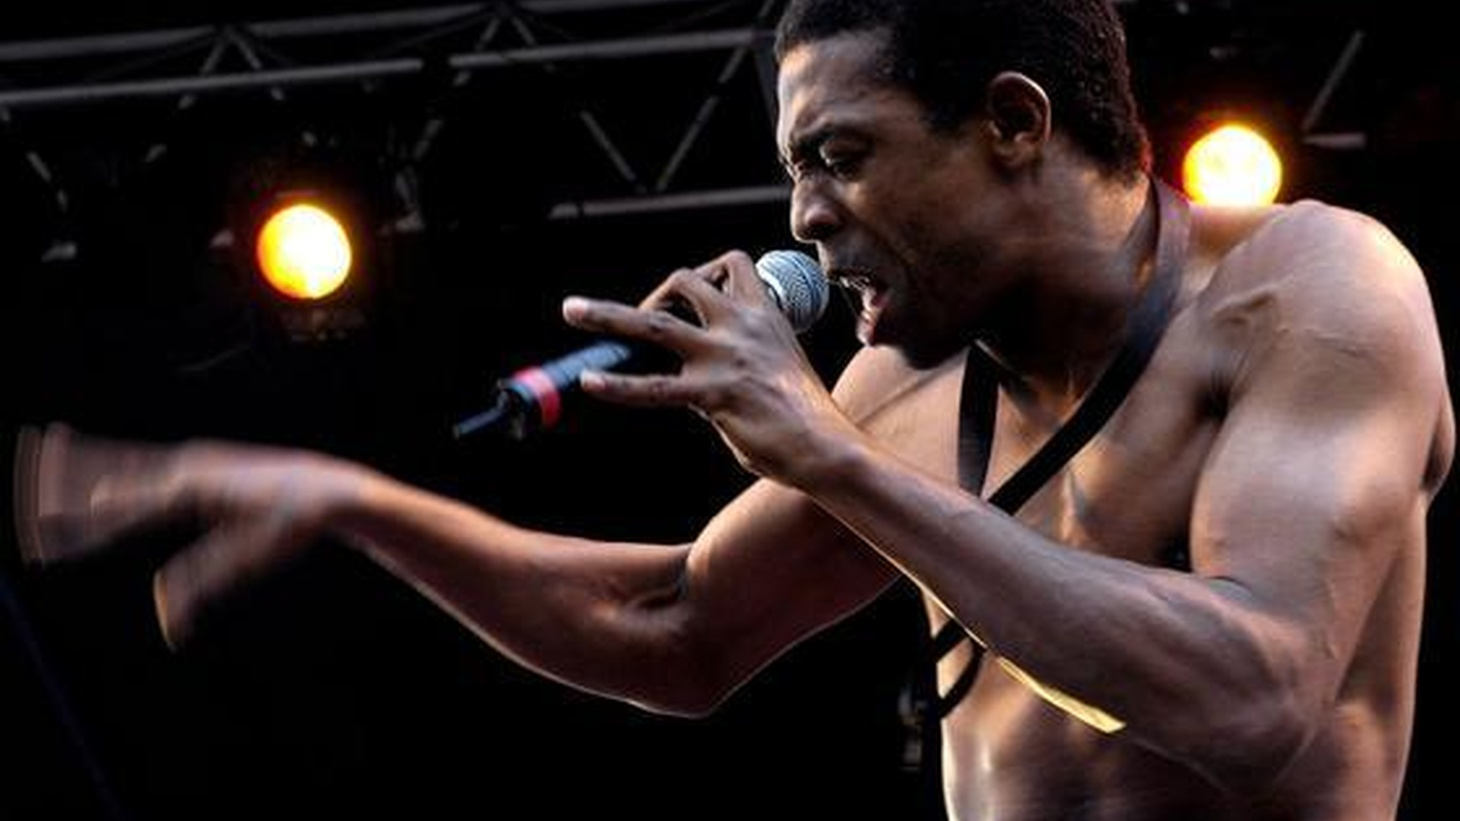 ...from Femi vs. KCRW Soundclash, a KCRW exclusive, features five Femi Kuti songs remixed by our deejays